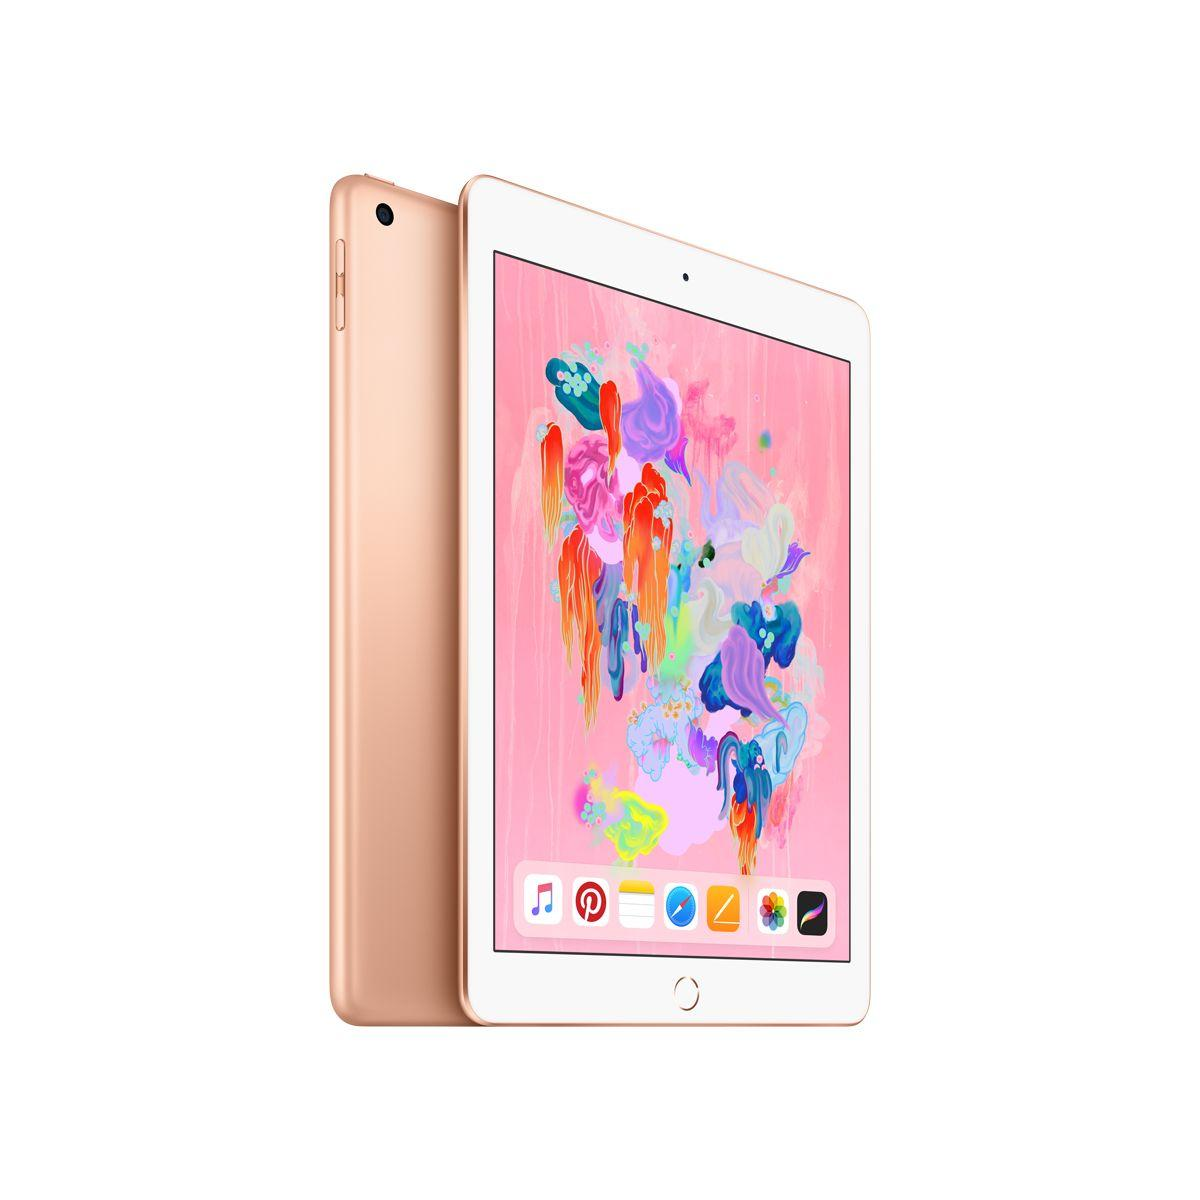 Tablette apple ipad new 128go or (photo)